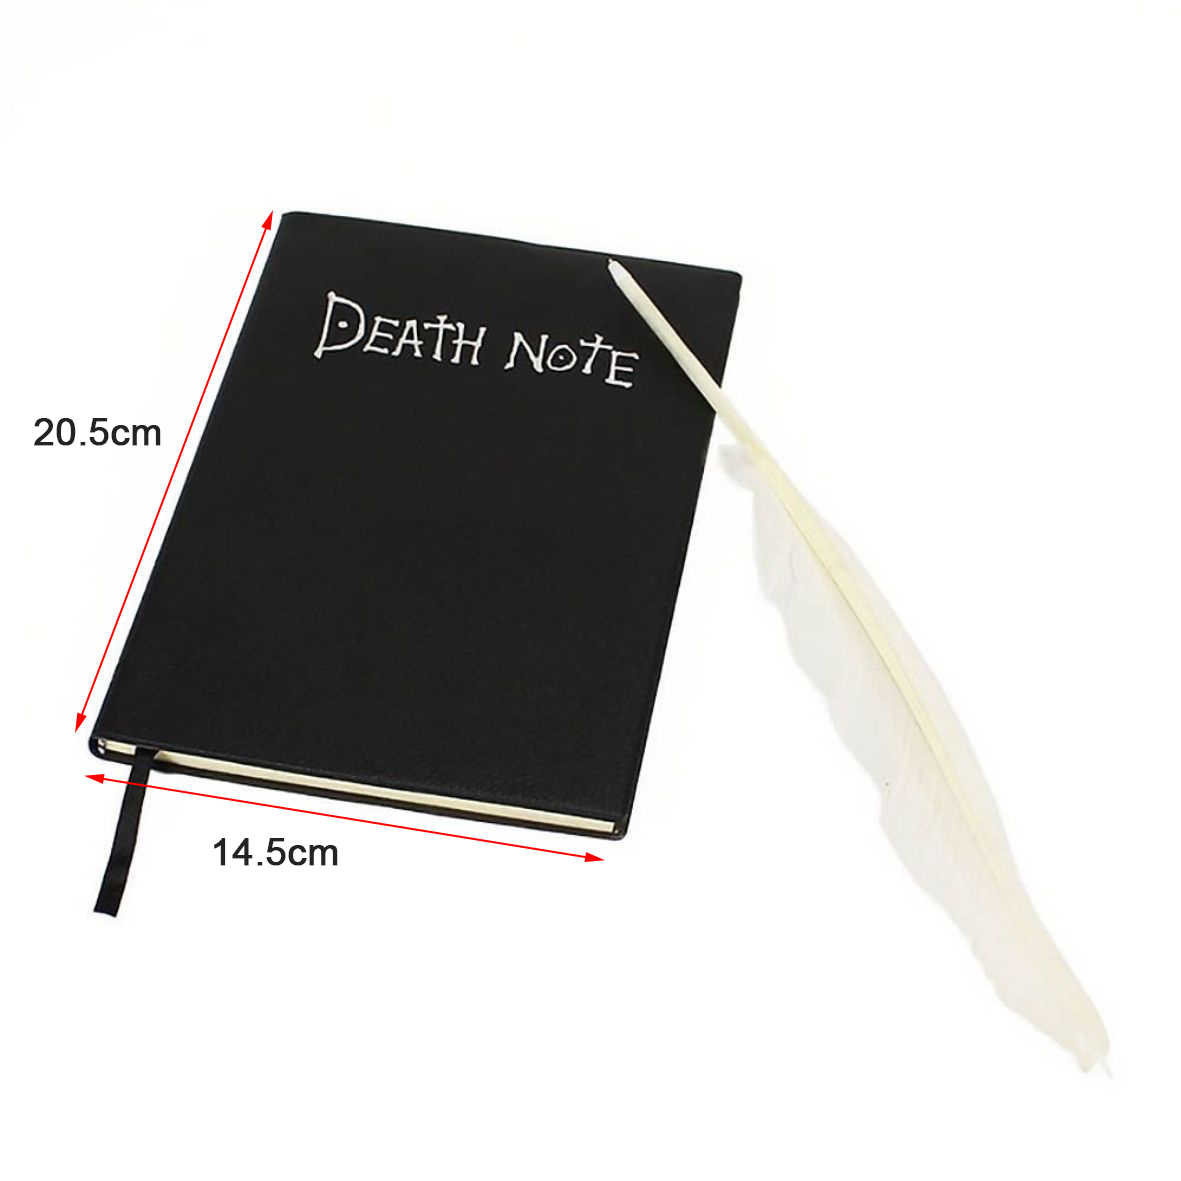 Notebook Vintage Anime Planner Agenda Organizer Diary Death Note Sketchbook Journals Notebooks Diary School and Office Supplies